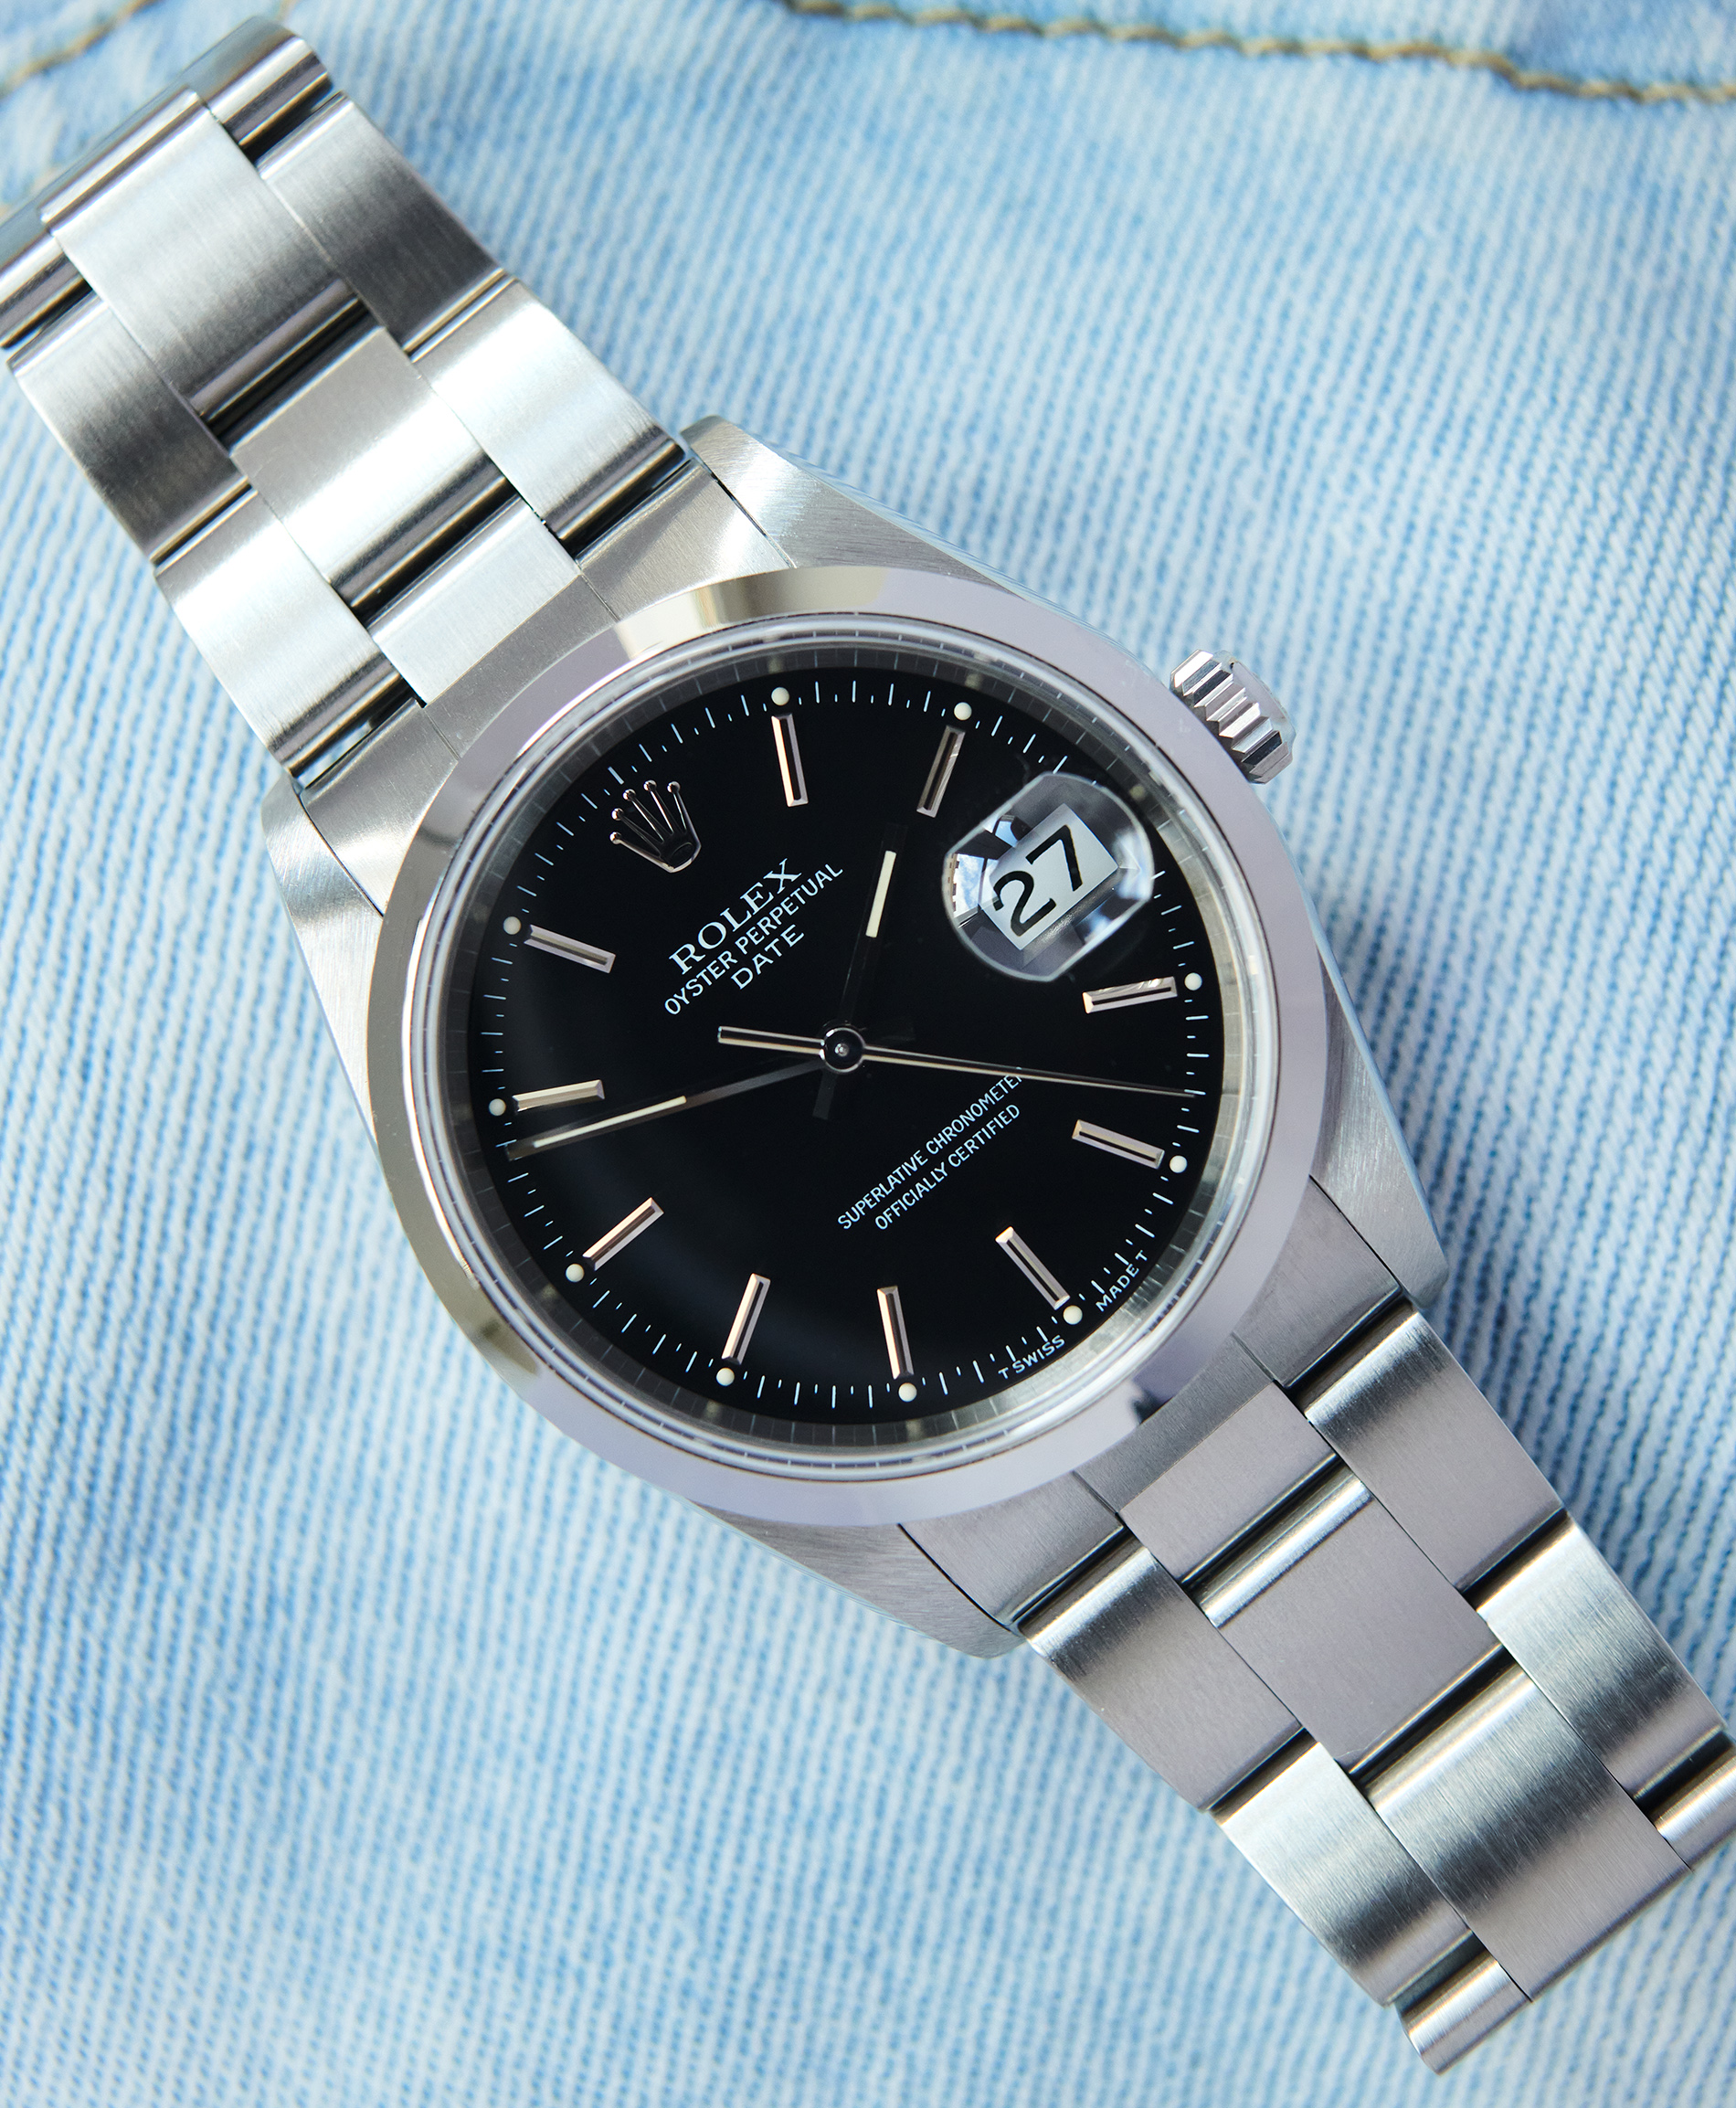 Rolex 15200 date papers + service